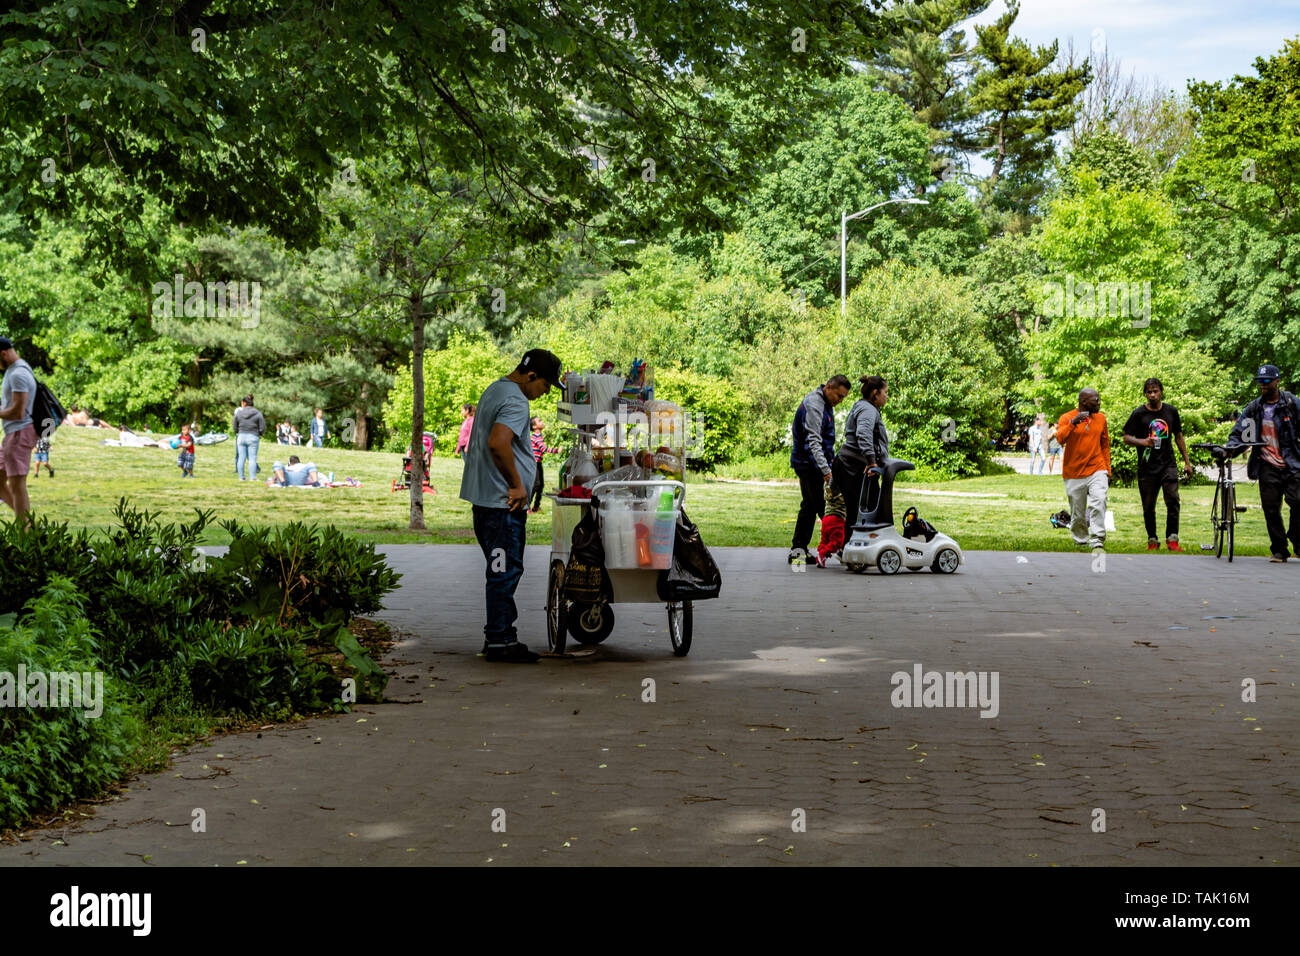 Hispanic man is selling an ice cream and other snacks in the park - Stock Image